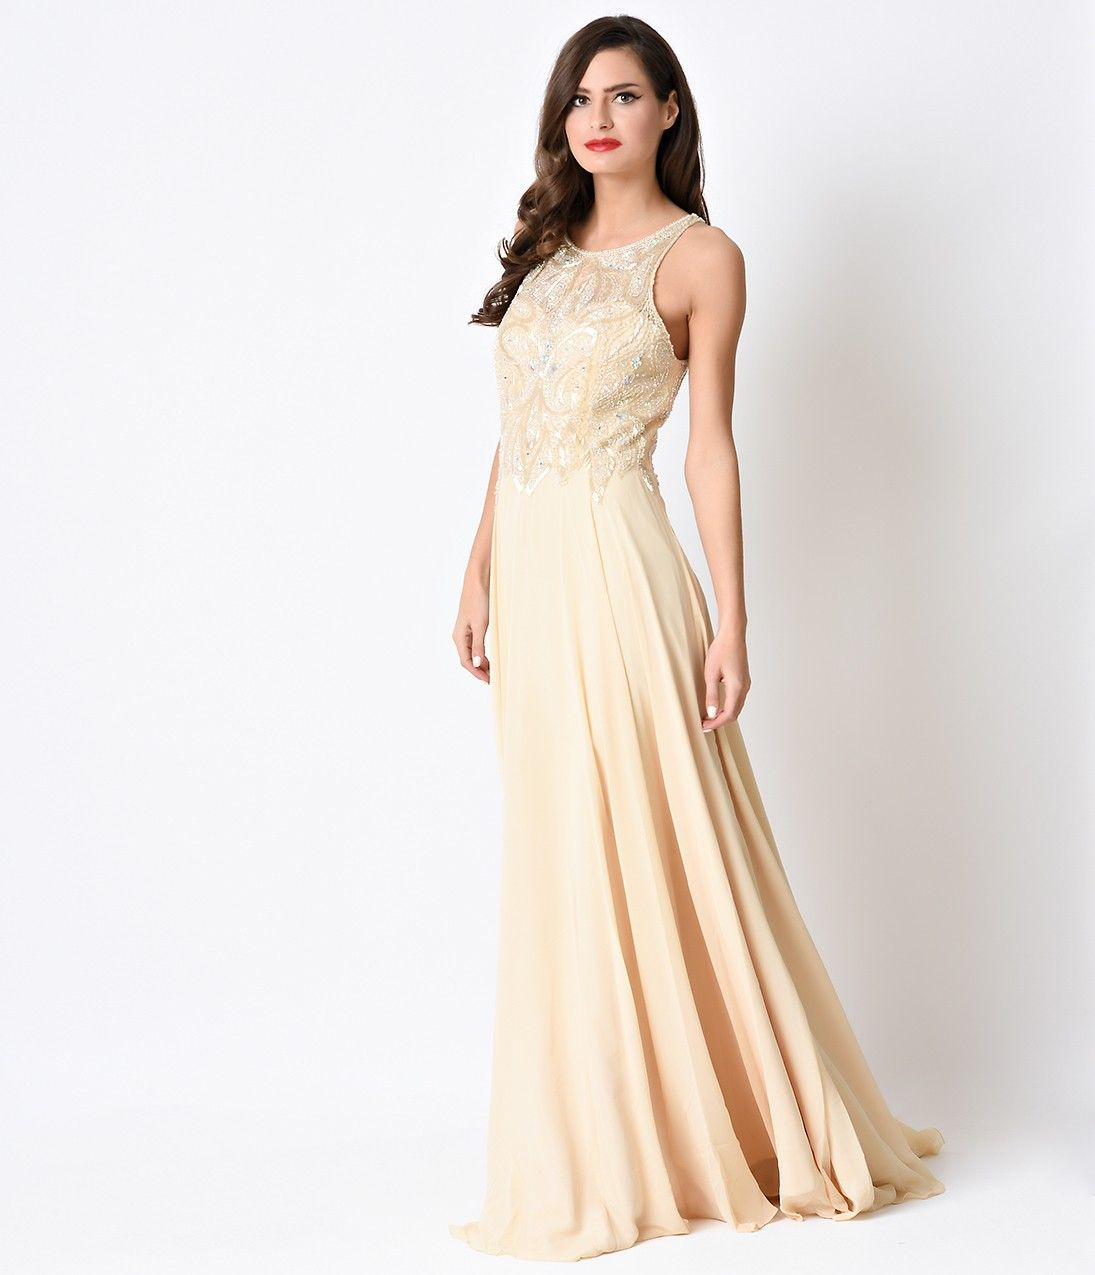 1930s style wedding dresses  s Style Gold Iridescent Deco Beaded Chiffon Long Evening Gown